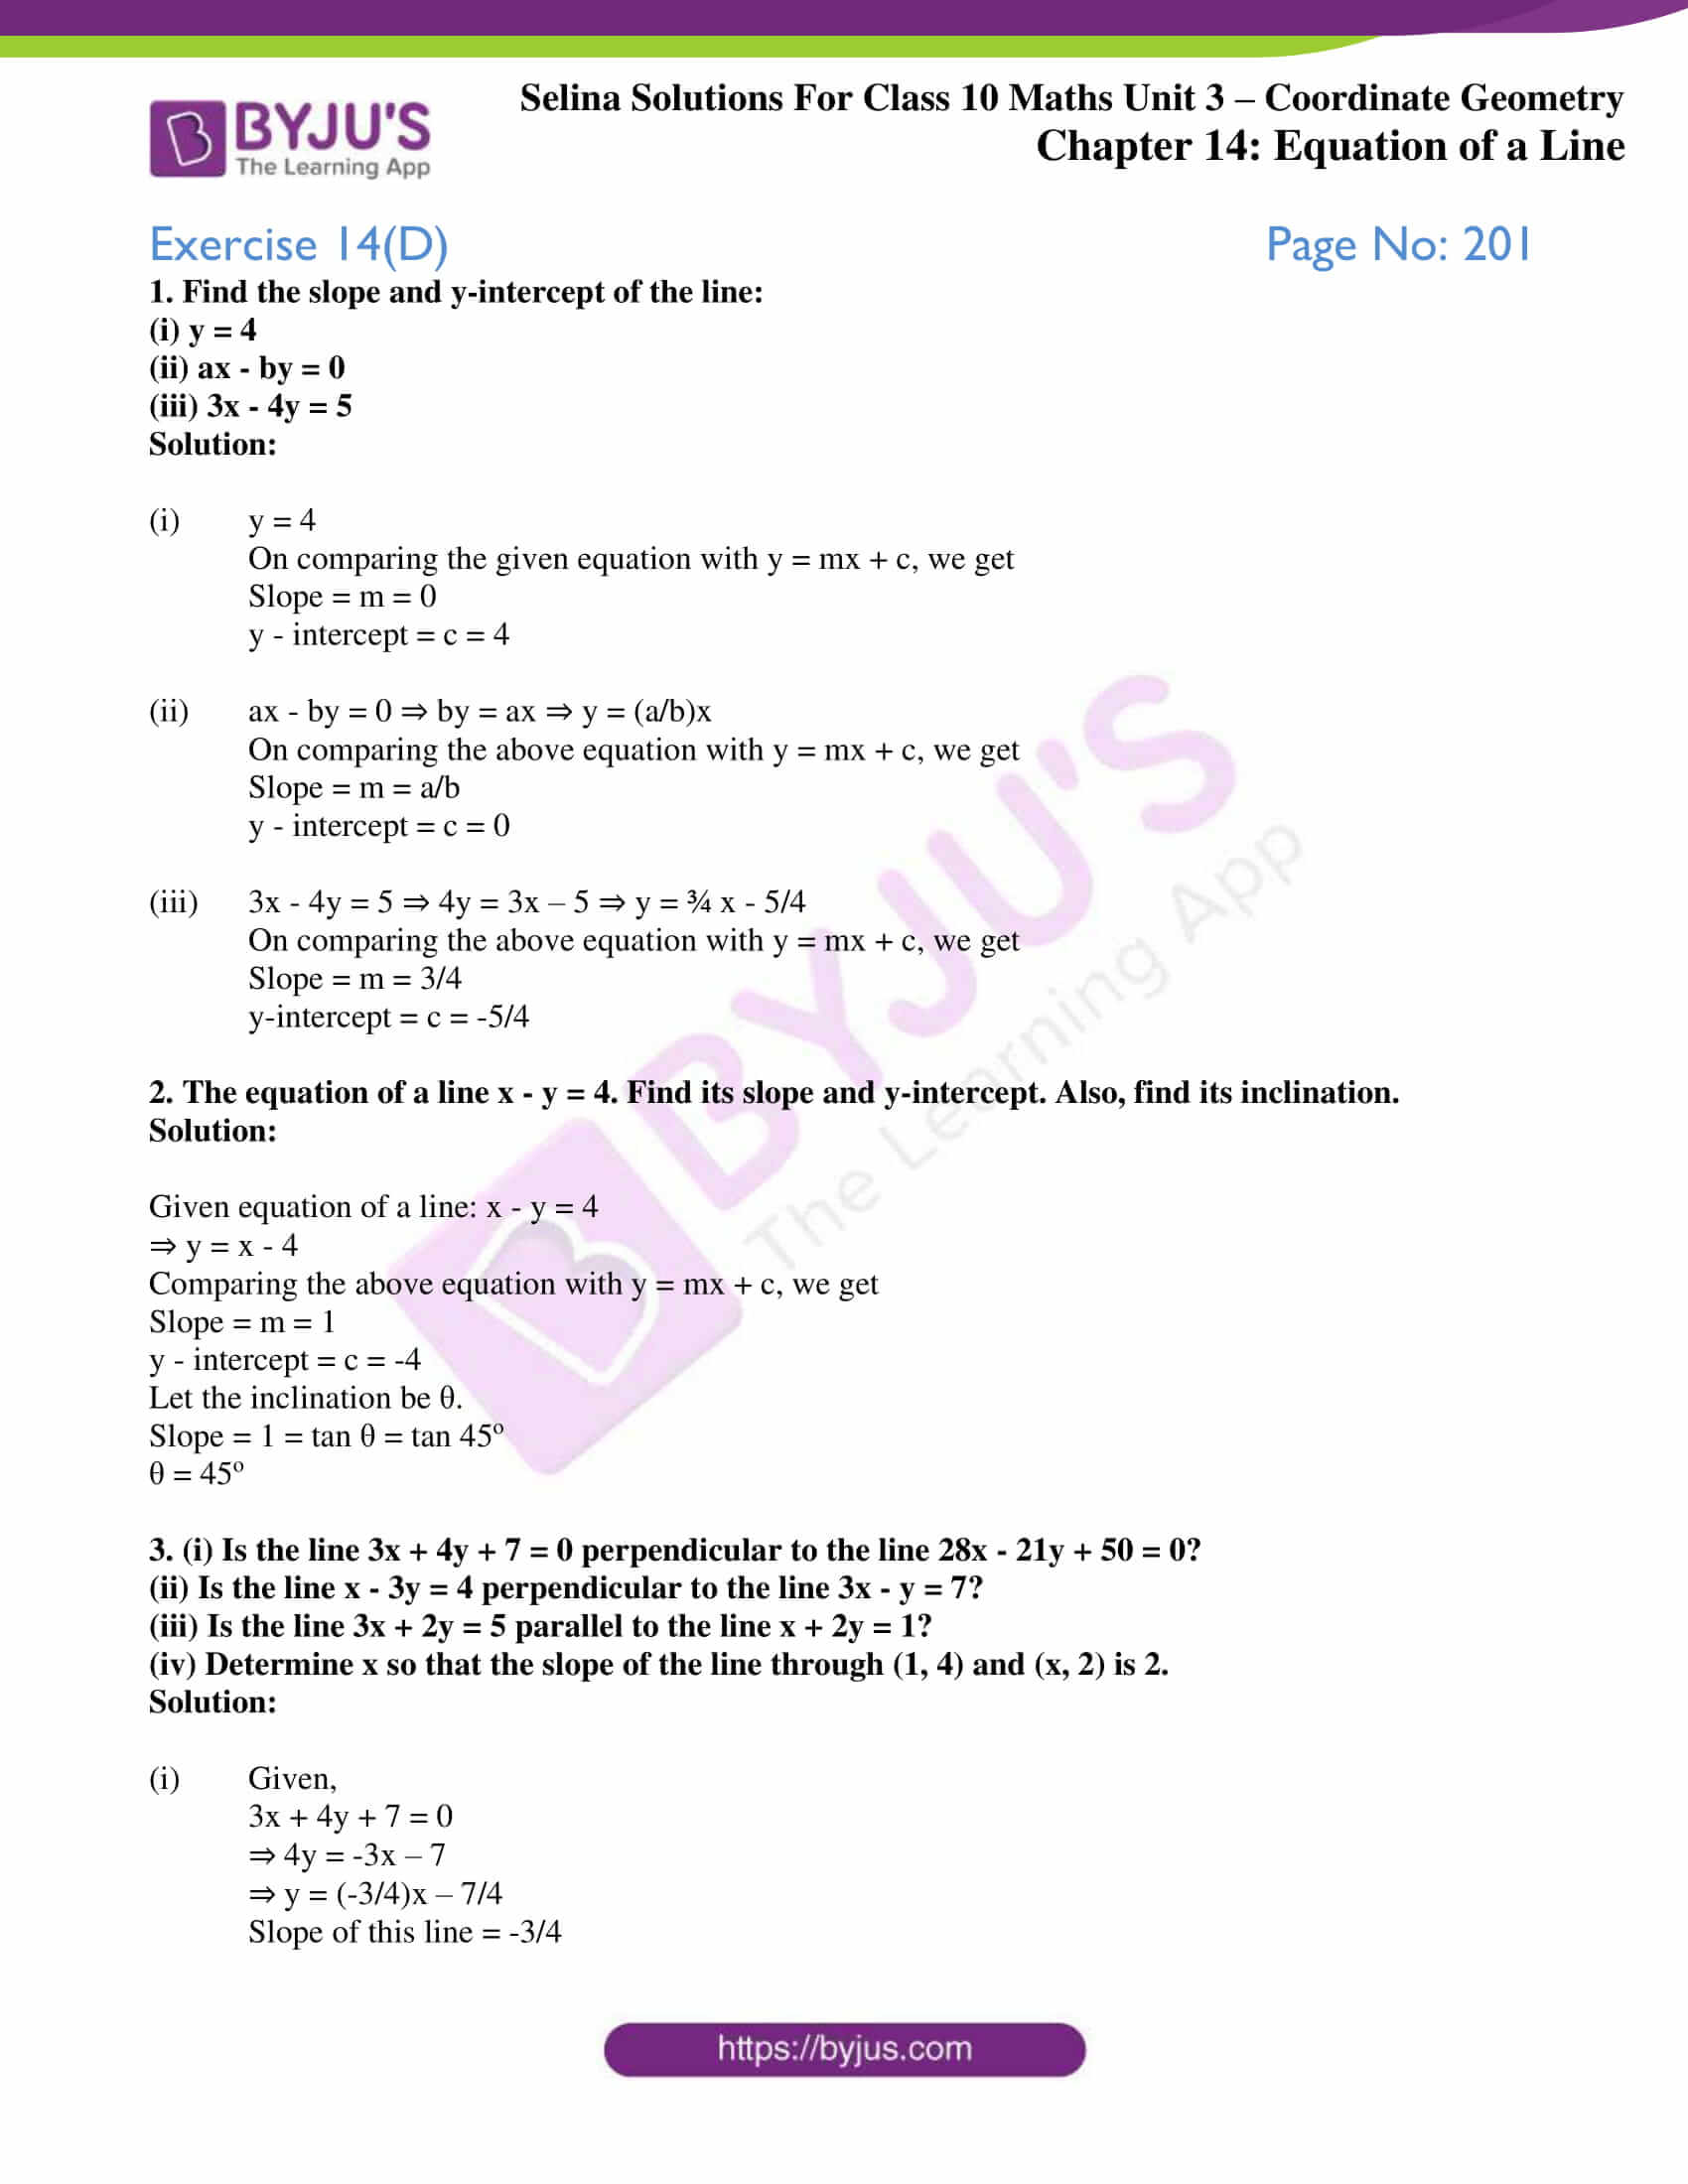 selina solution concise maths class 10 chapter 14 ex d 1